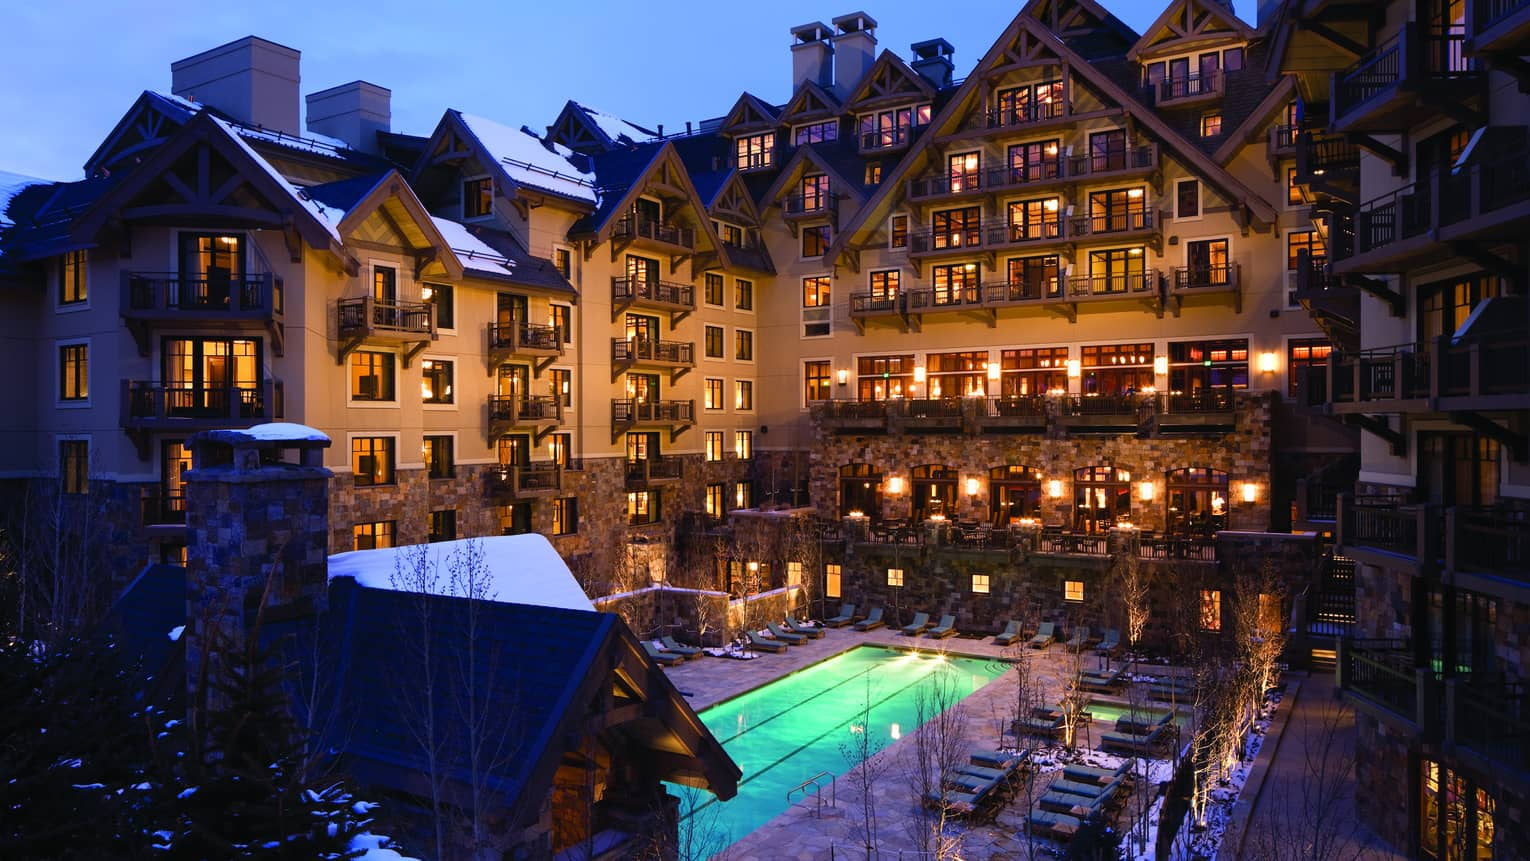 Four Seasons Vail hotel exterior at night with lit windows and balconies, glowing blue outdoor swimming pool